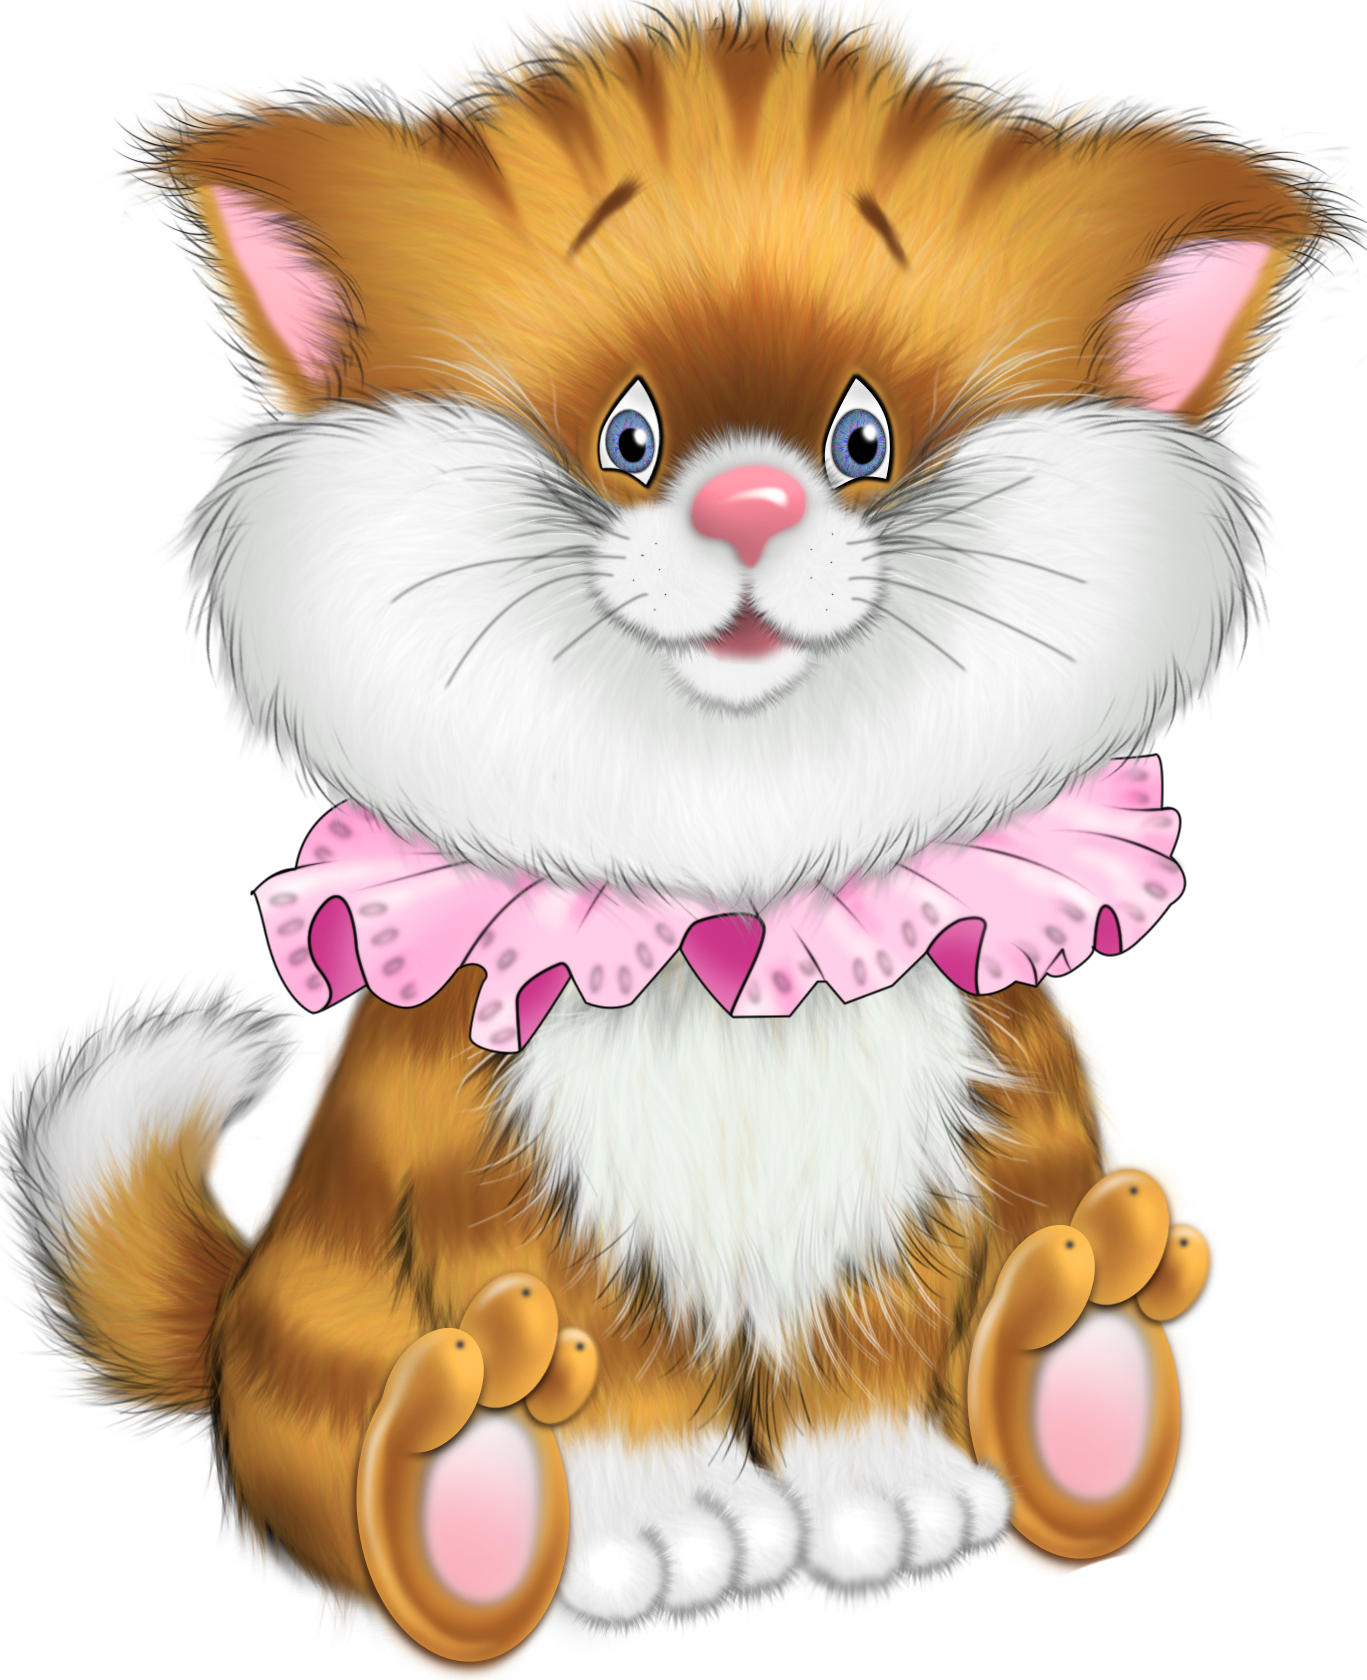 clipart transparent library Kittens clipart illustration. Tiger clip art images.